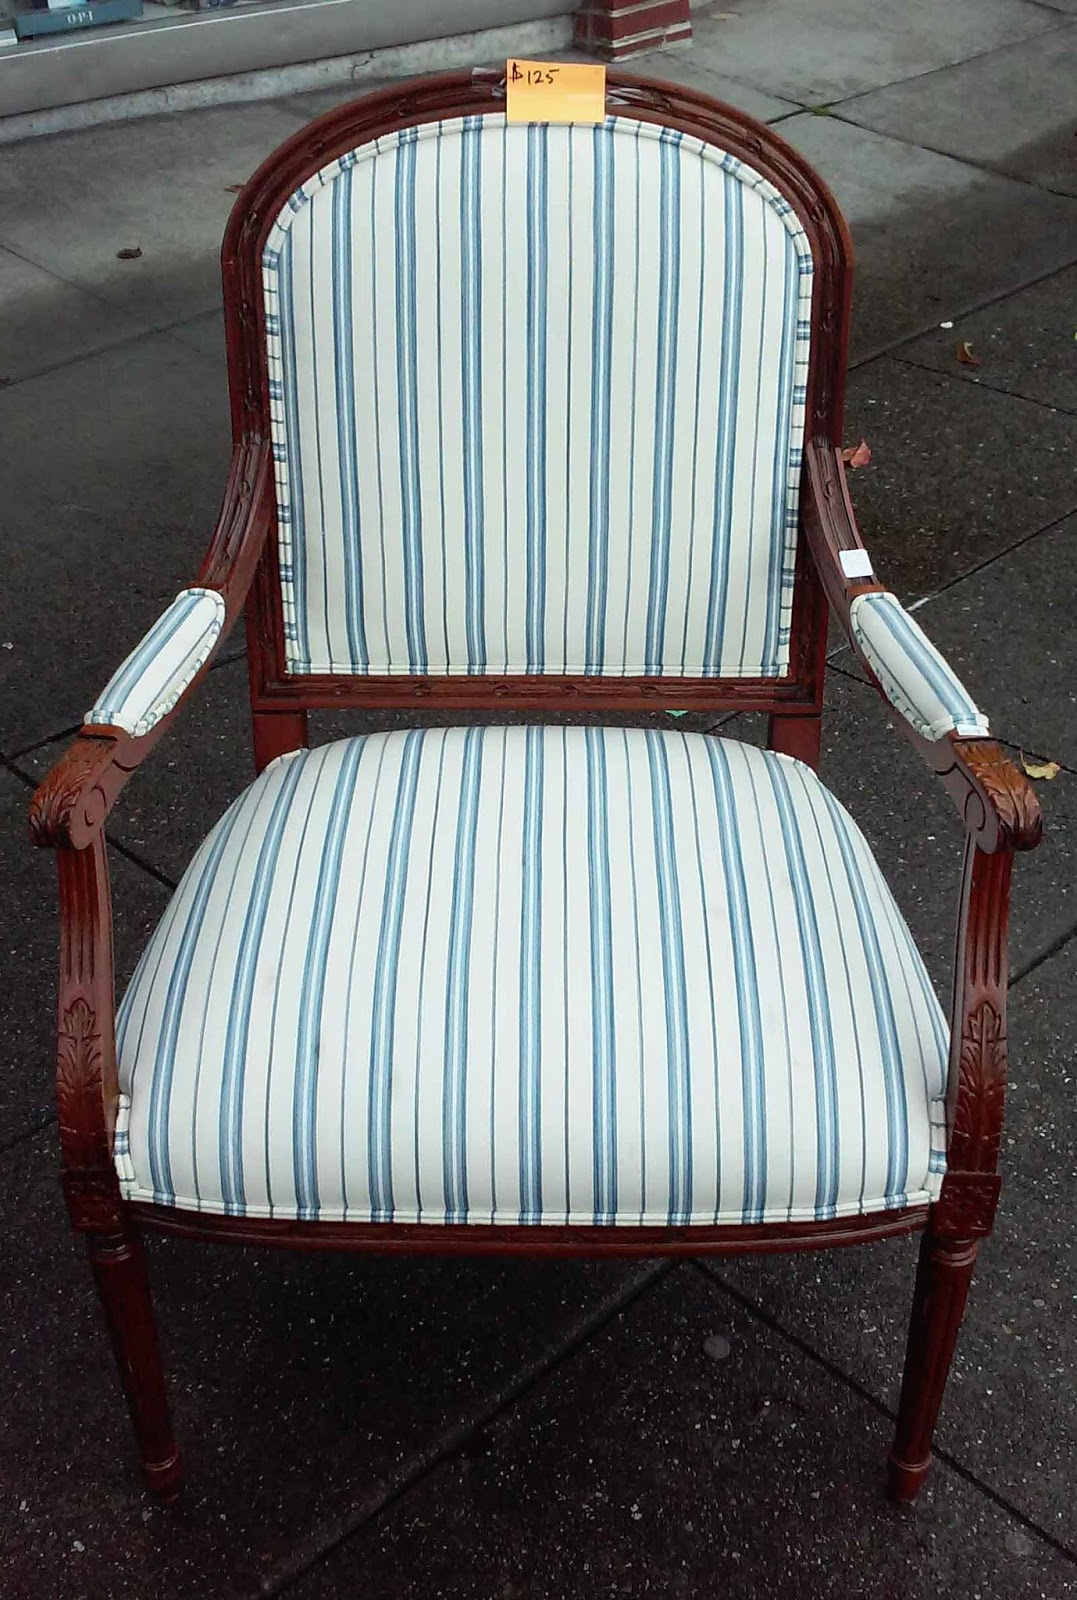 UHURU FURNITURE & COLLECTIBLES: SOLD Blue and White ...